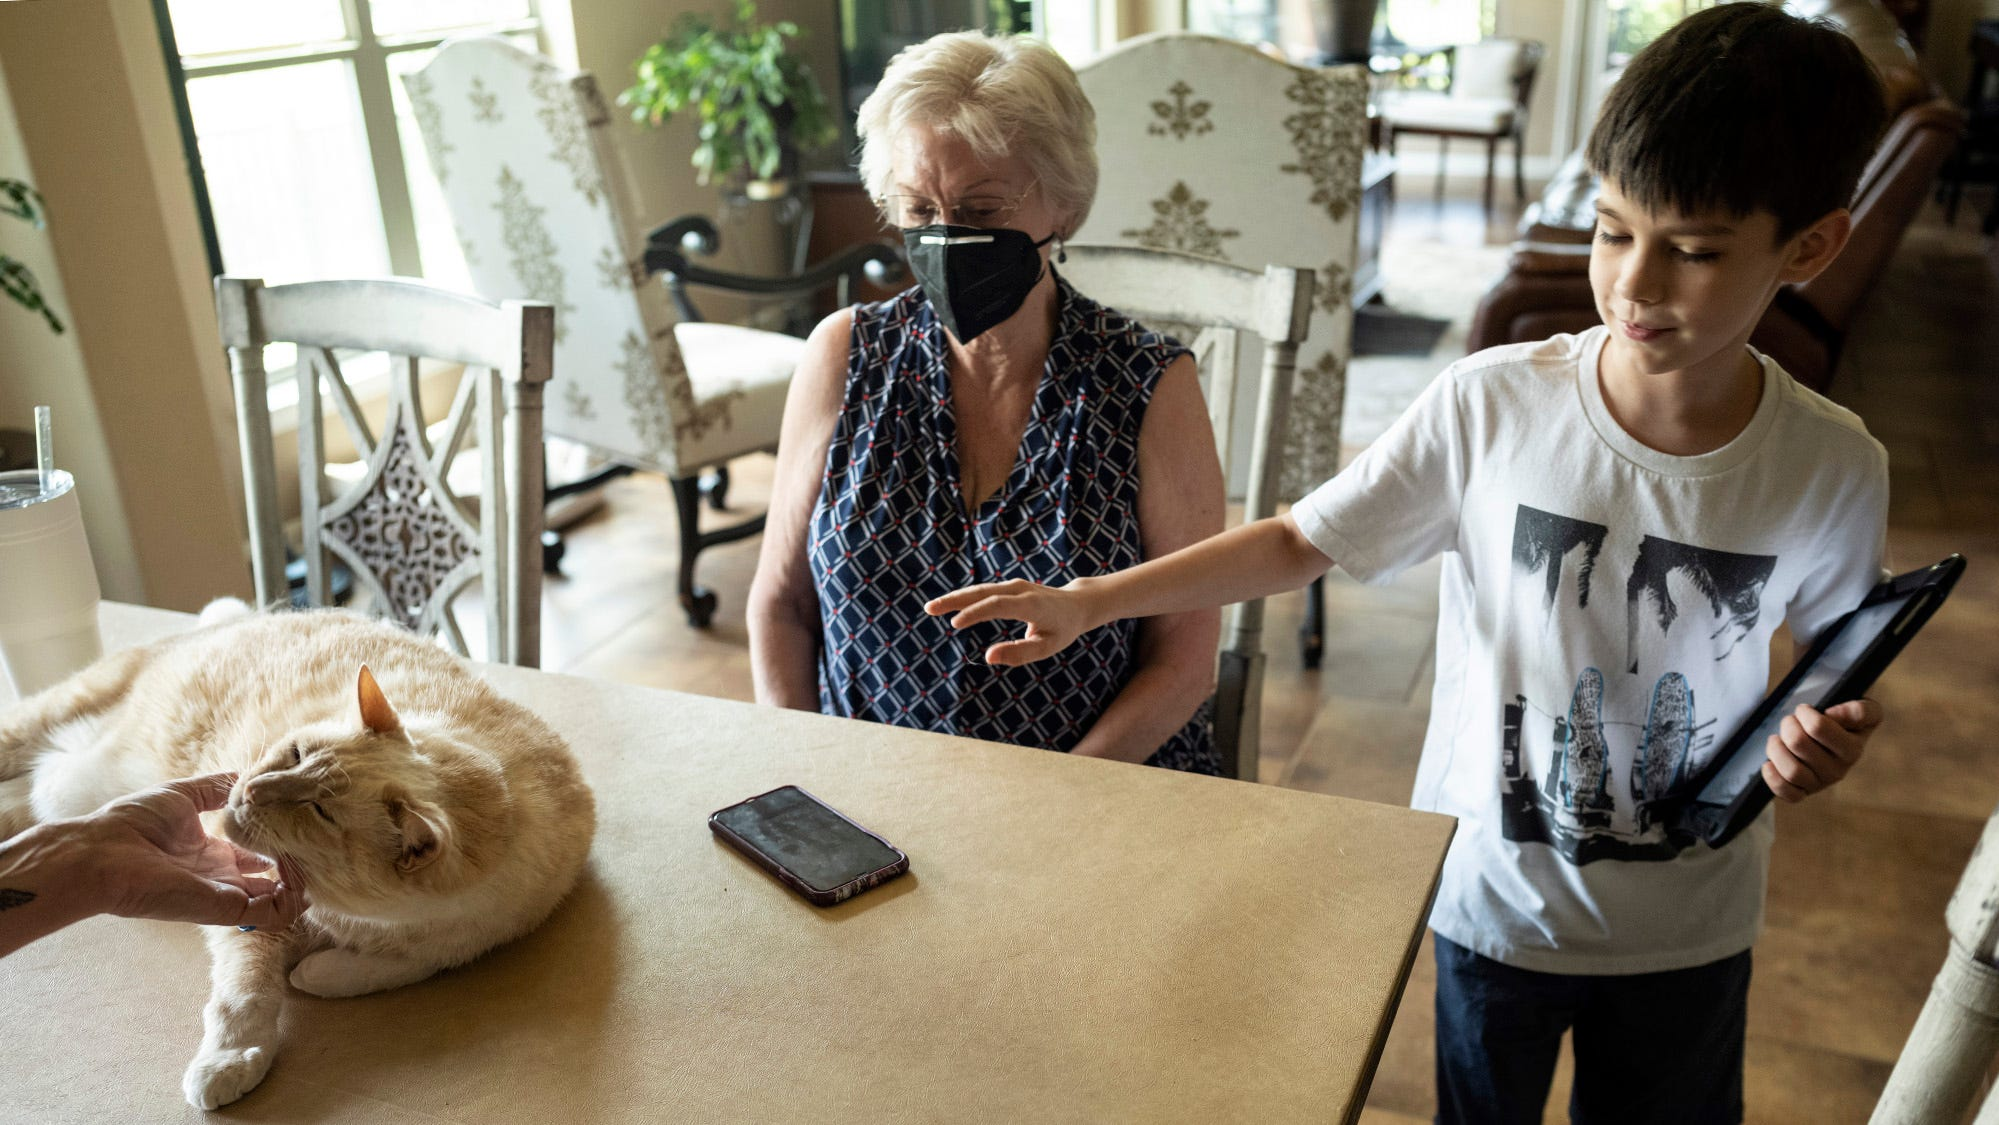 Carol Toman watches her grandson Raymond Gallardo change direction, from petting her cat, Hyperion, also petted by her mother, Sarah Gallardo, to playing on her iPad on Friday at Toman's in Round Rock.